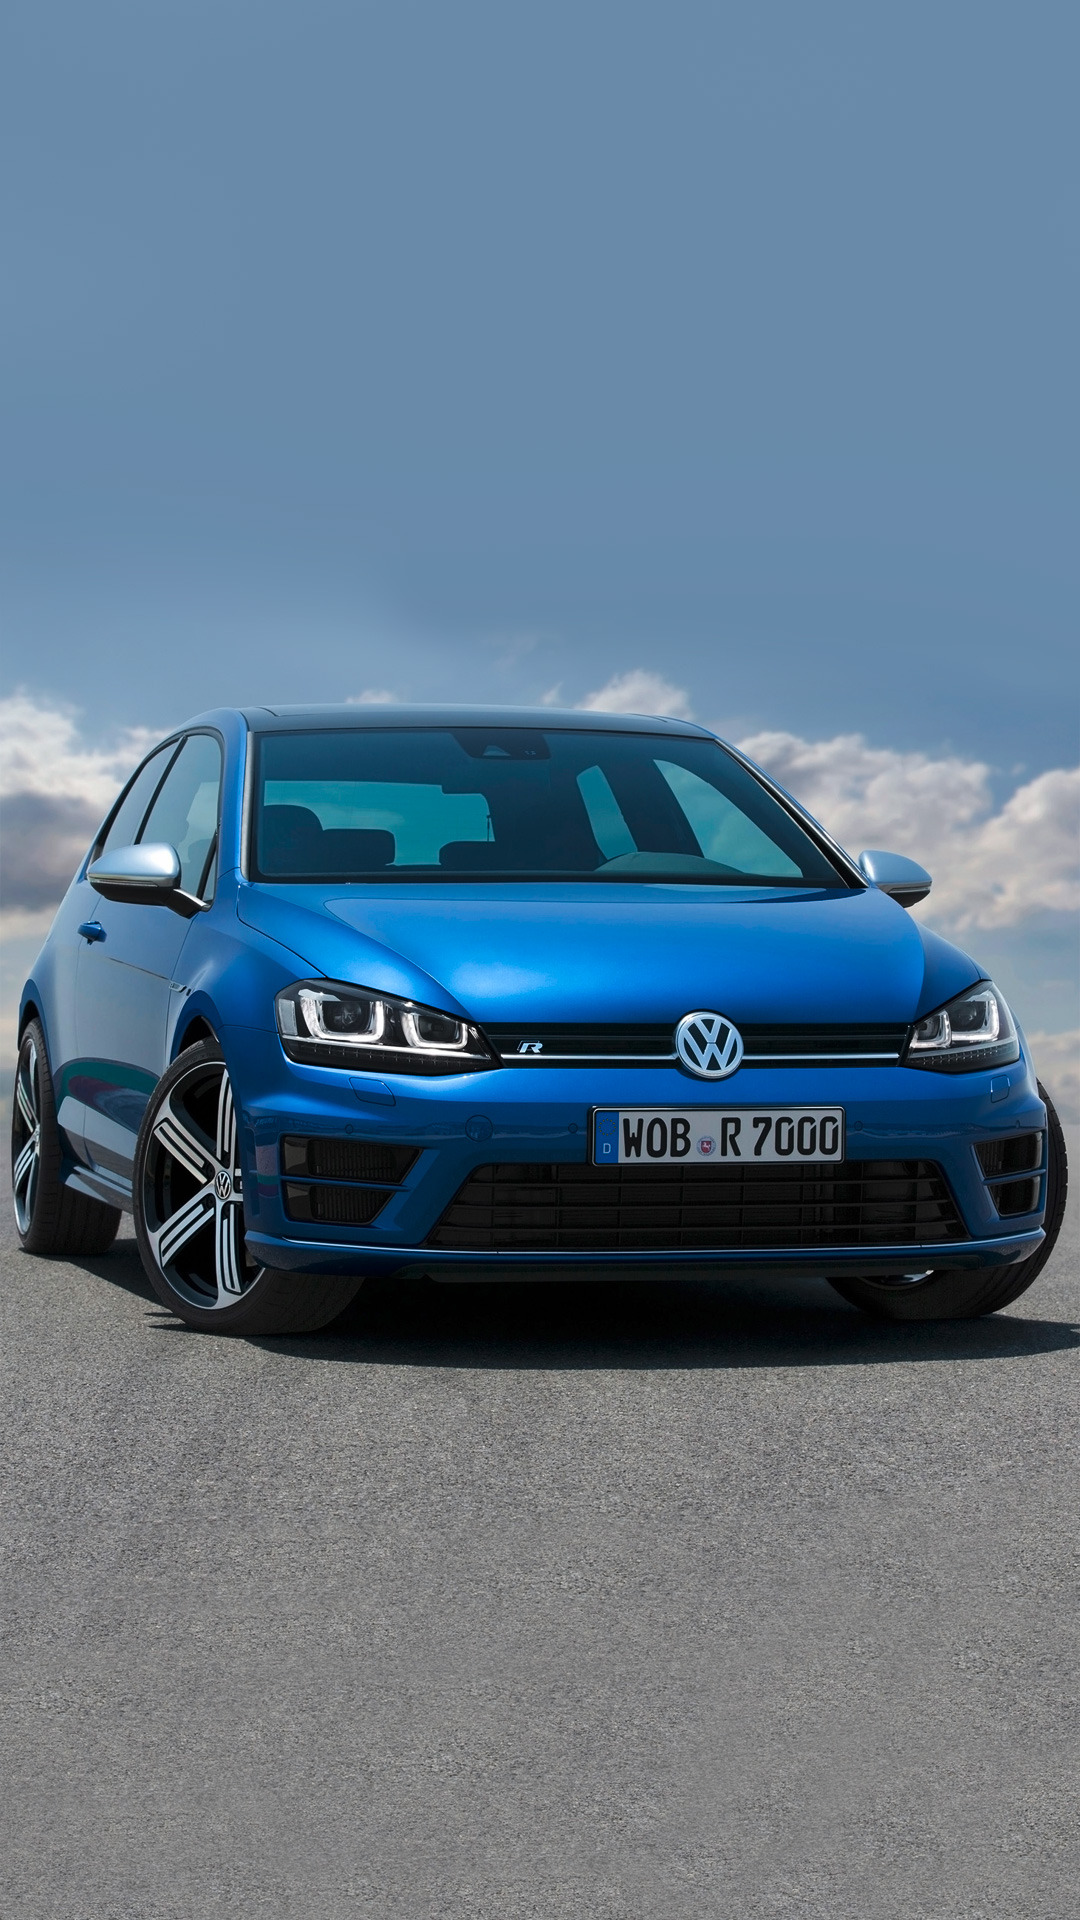 Hd Wallpaper Cars Iphone Volkswagen Golf 7 Best Htc One Wallpapers Free And Easy